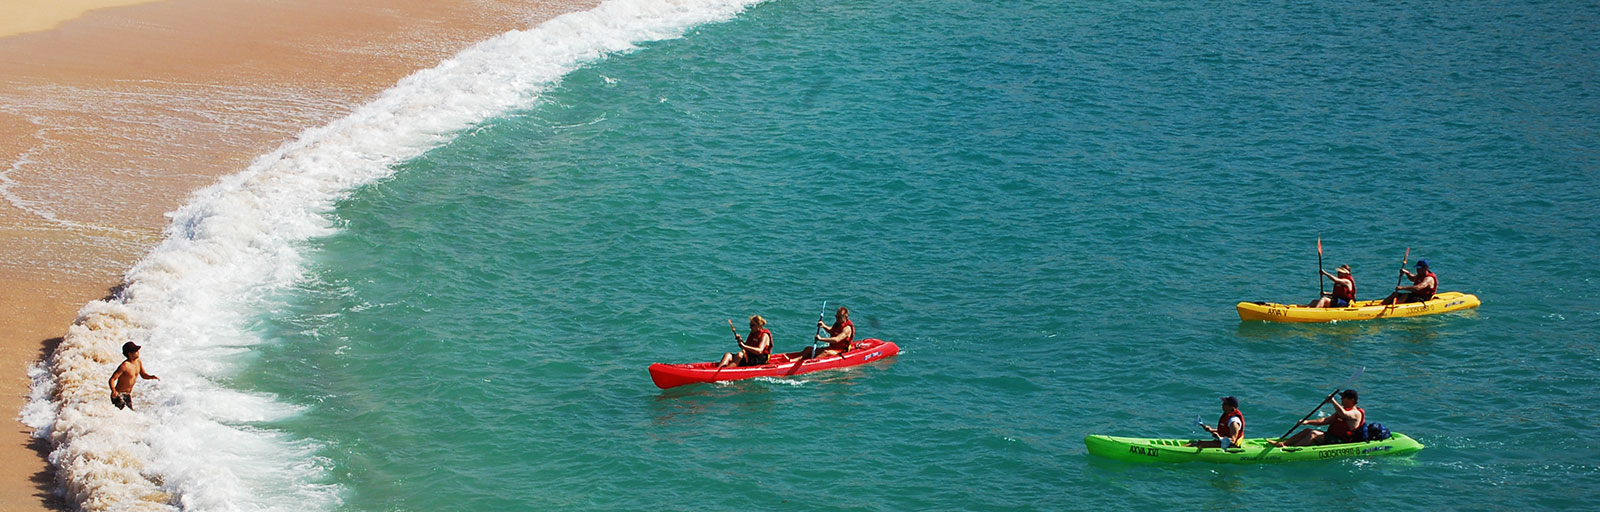 Sea Kayaking & Snorkeling on a Mexico Yoga Retreat: Arriving to the Beach